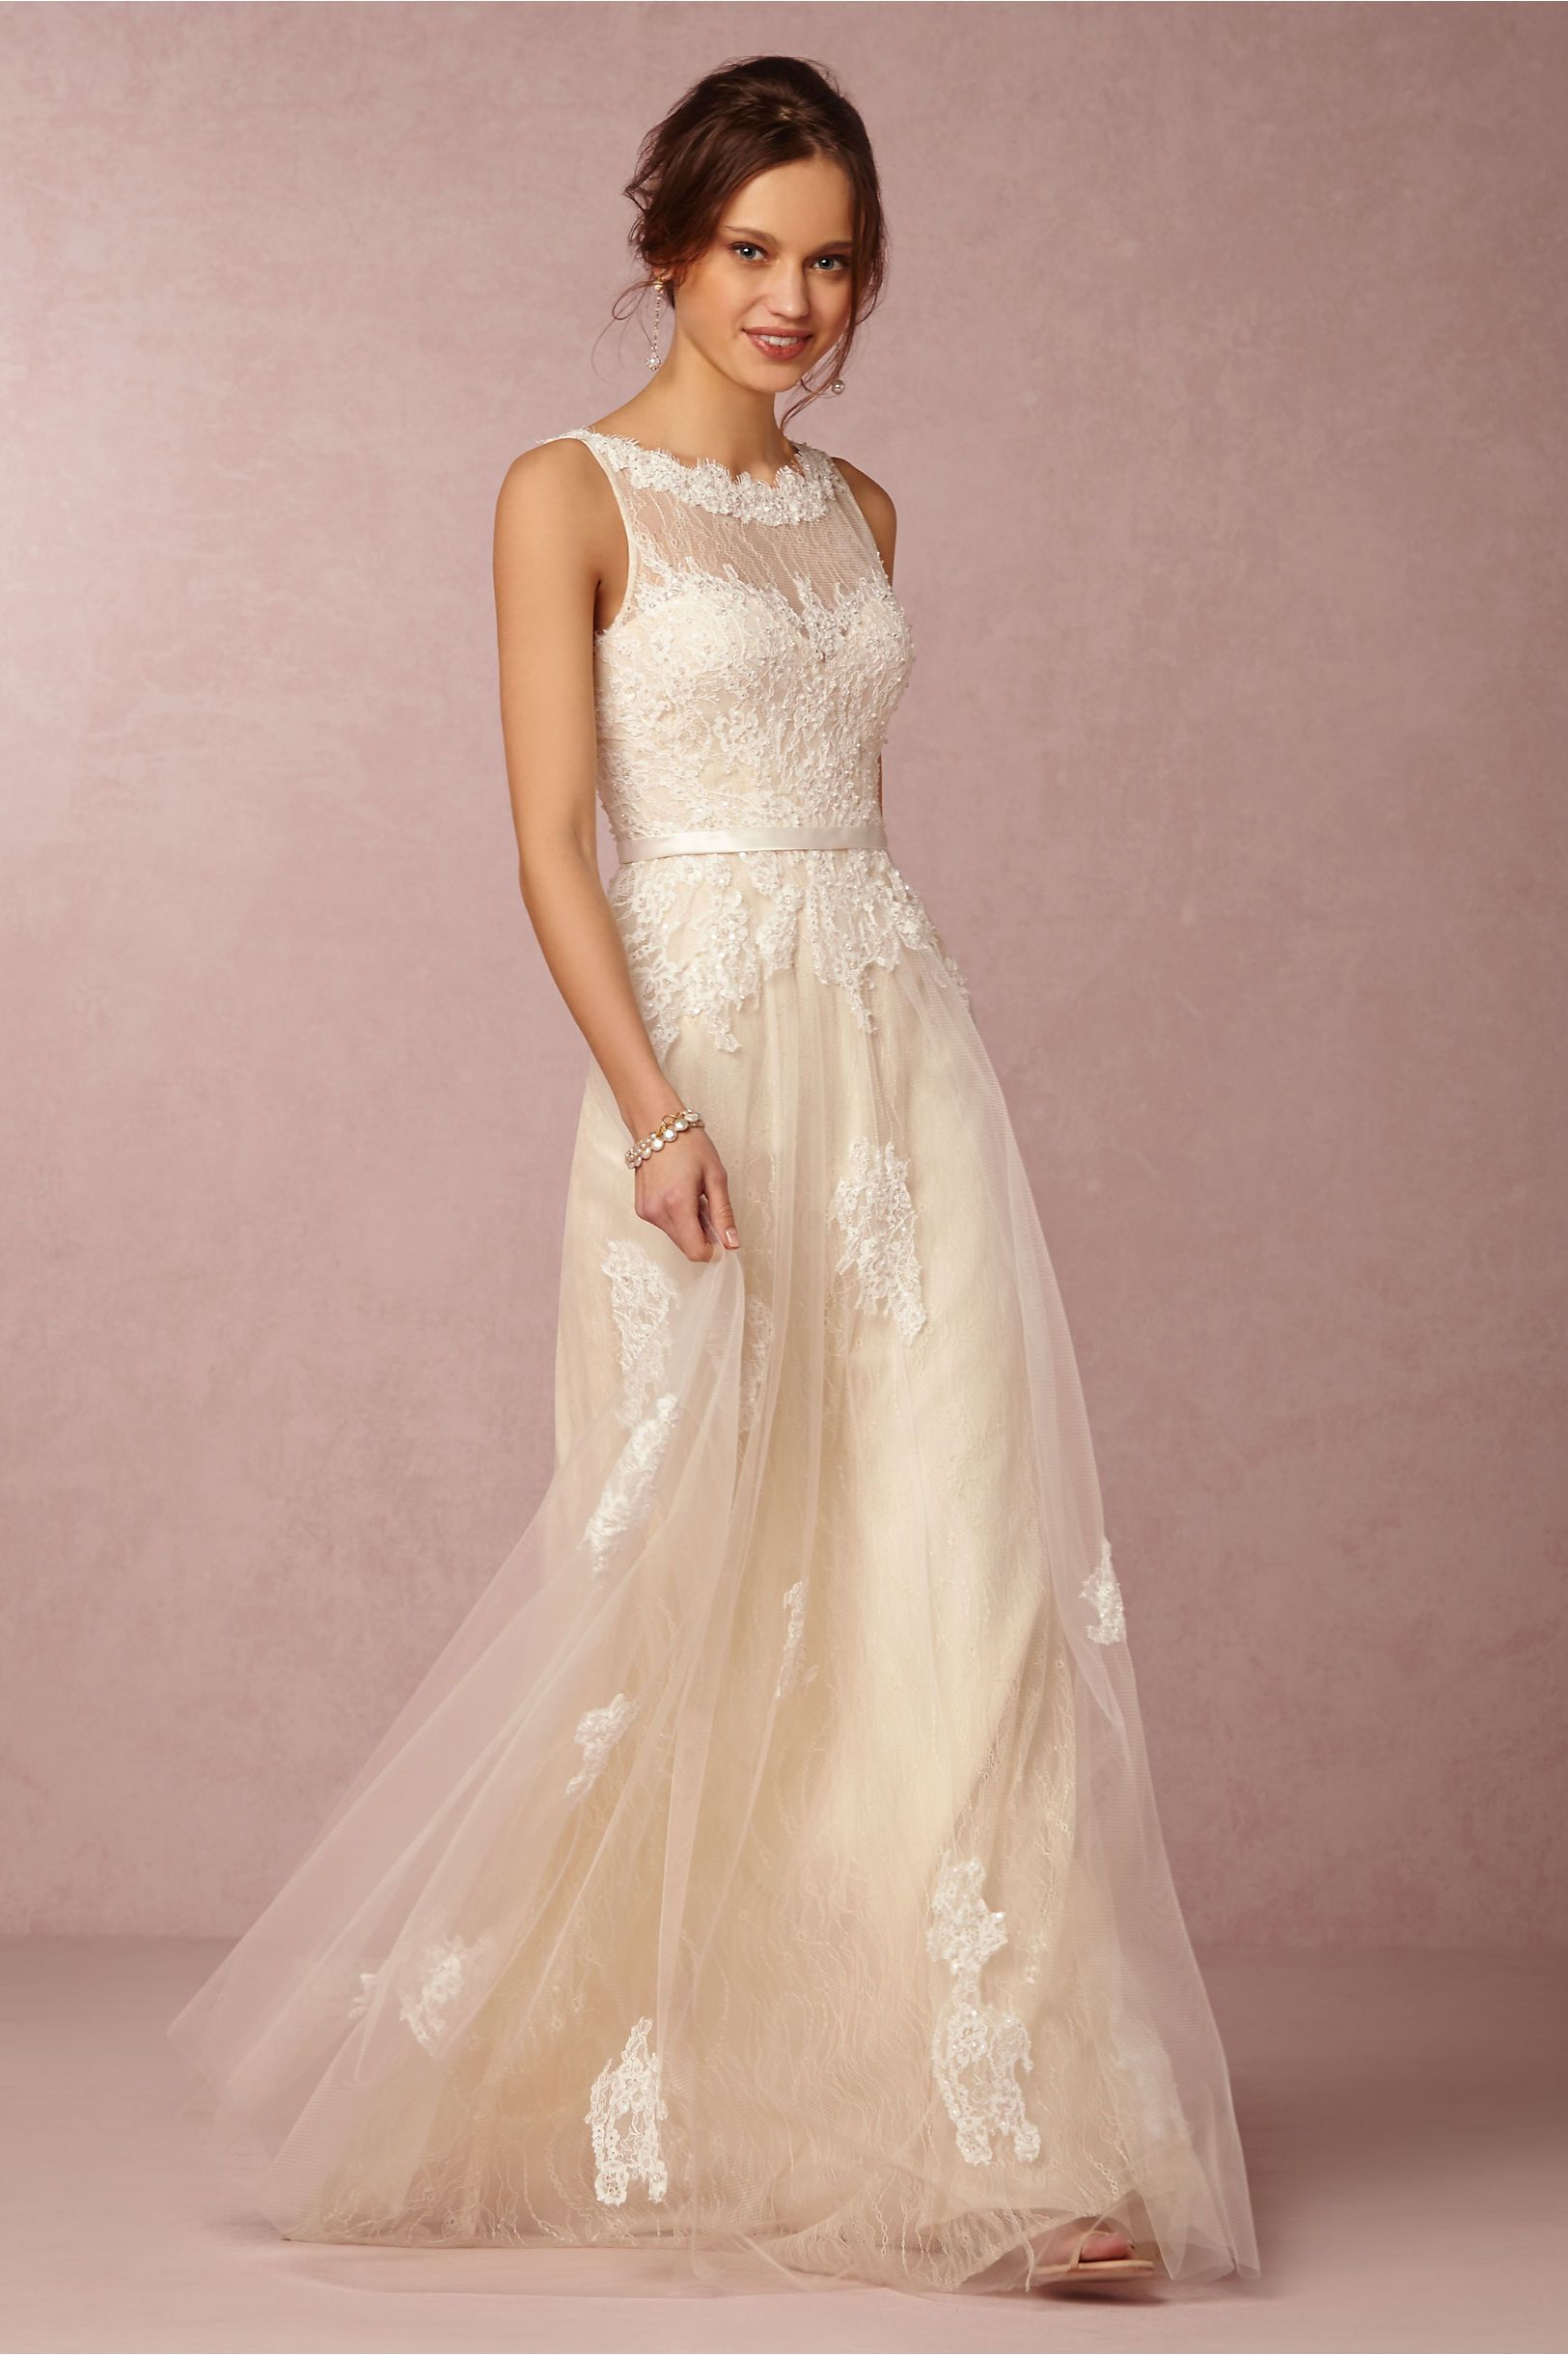 Georgia Gown in New at BHLDN | Trajes | Pinterest | Novios, Vestidos ...